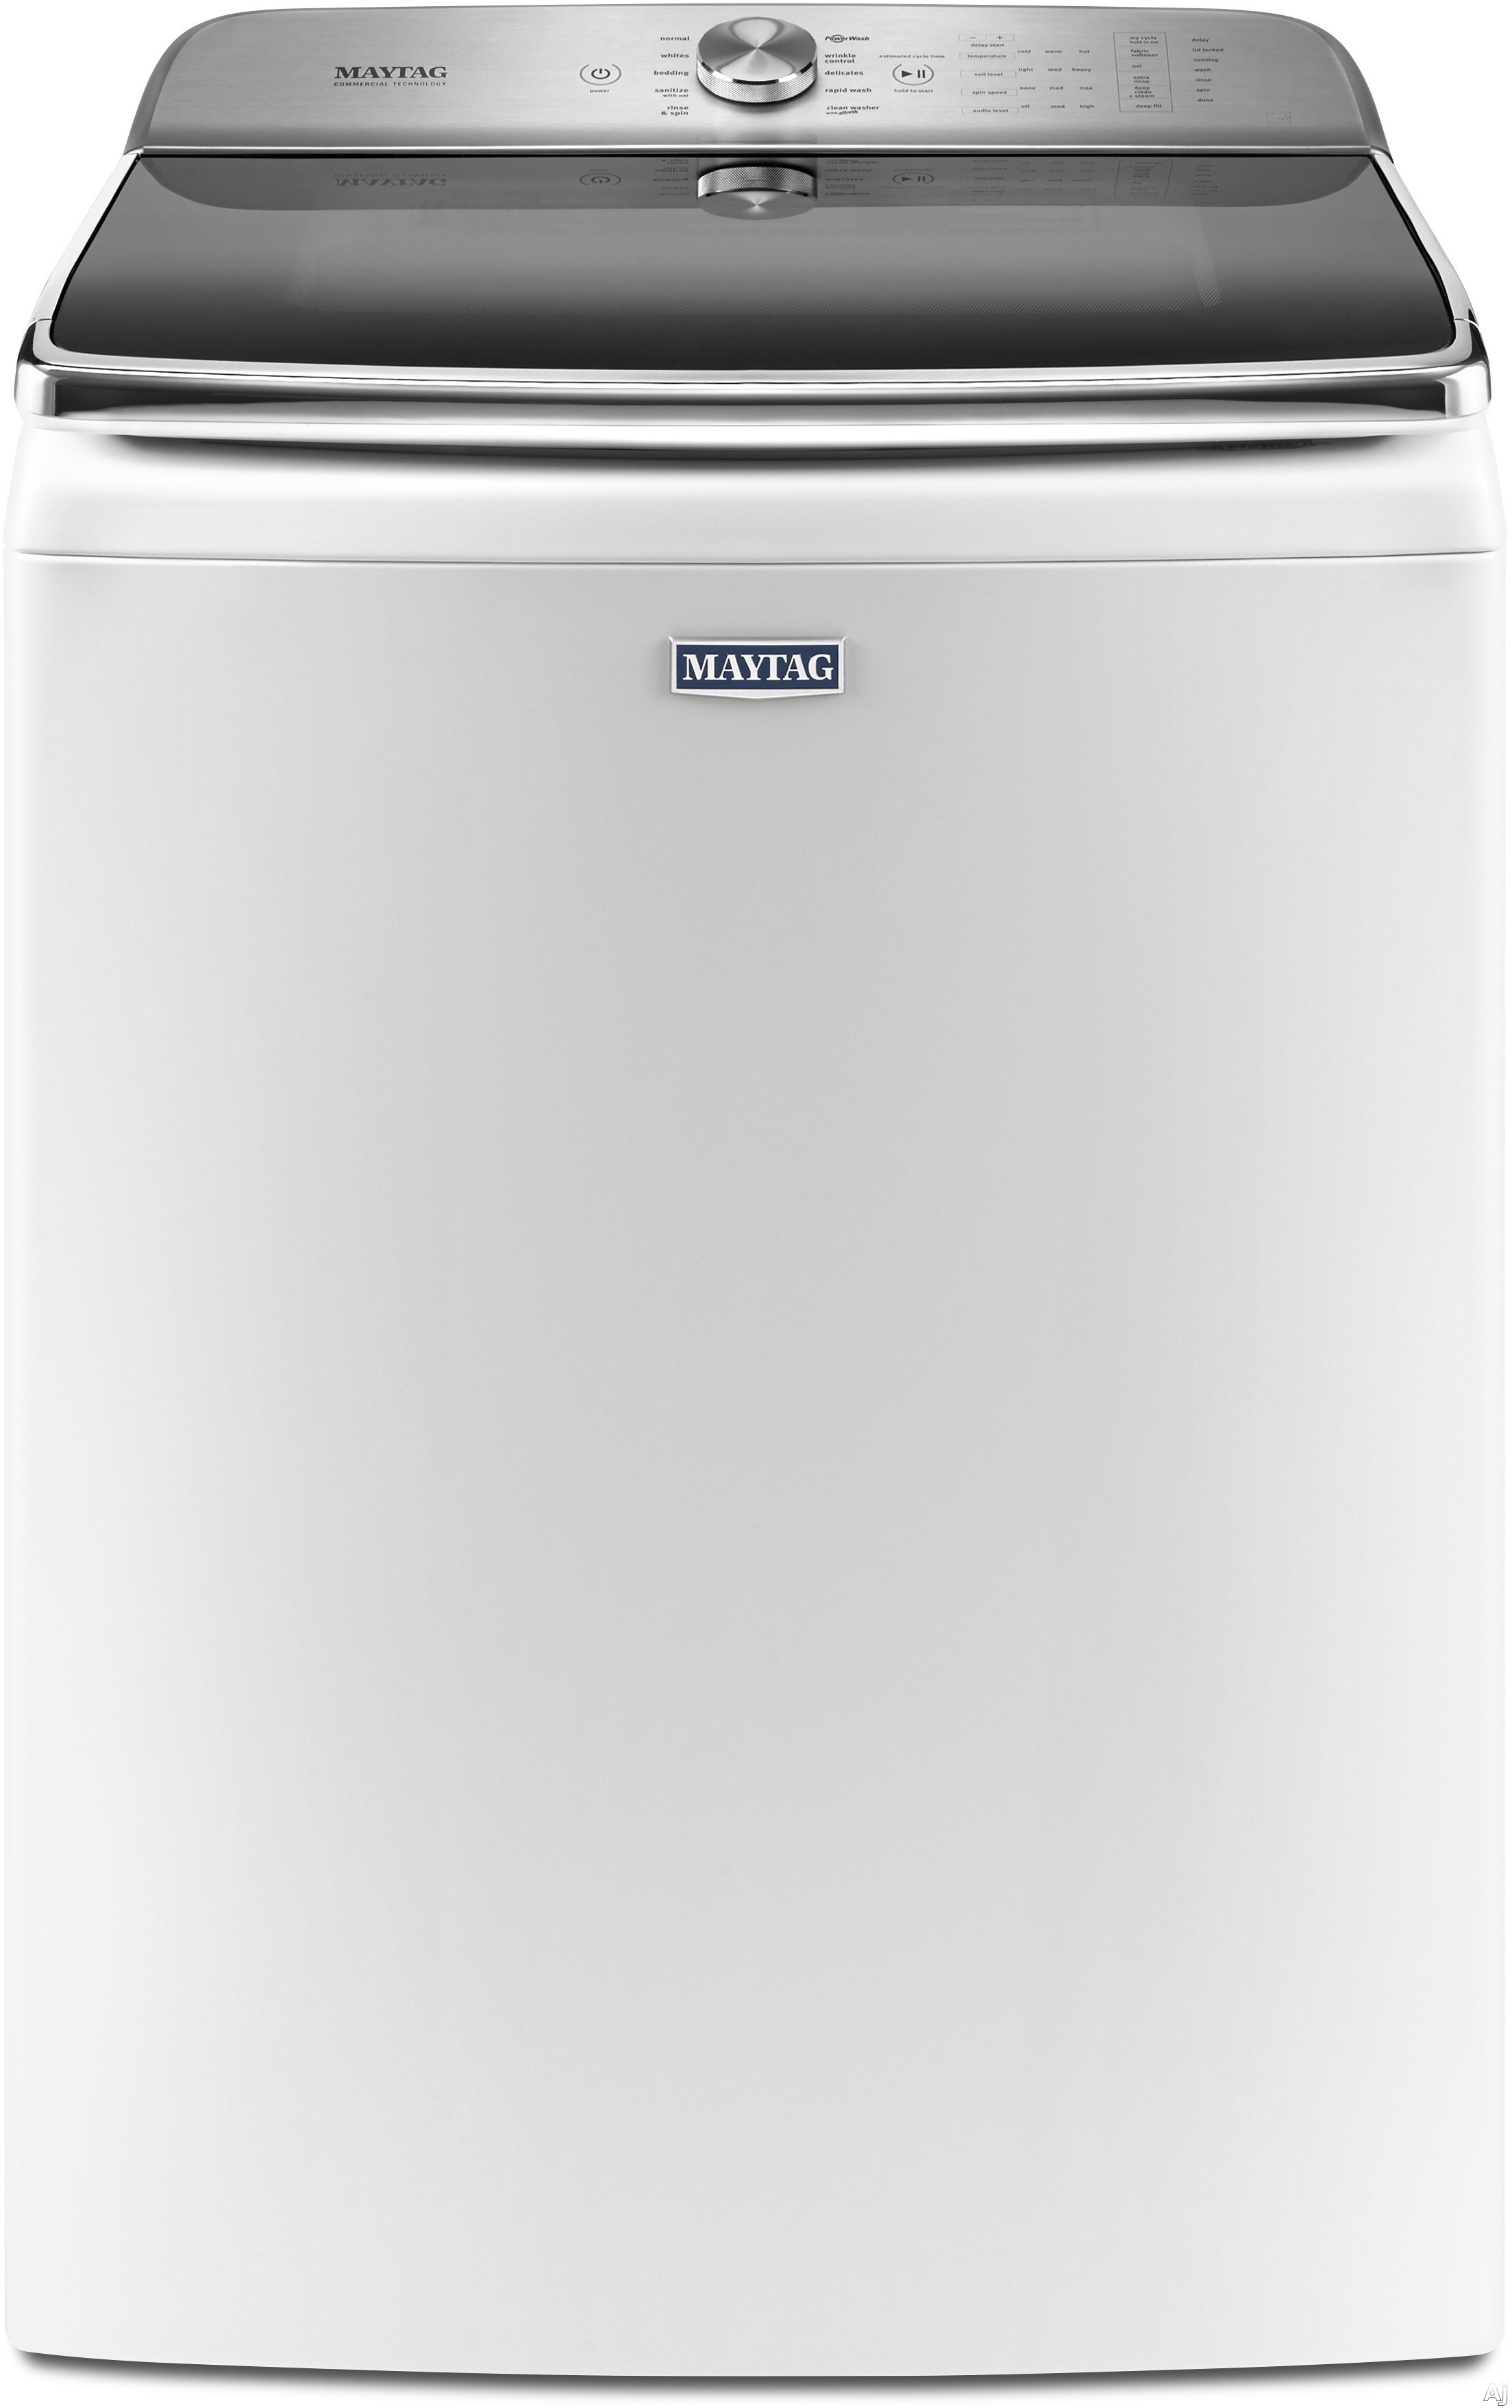 Maytag MVWB955F 30 Inch Top Load Washer with 6.2 cu. ft. Capacity, 10 Wash Cycle Selections, PowerWash Cycle, Power Impeller, Deep Fill Option, Internal Heater, Wrinkle Control and ENERGY STAR Certified